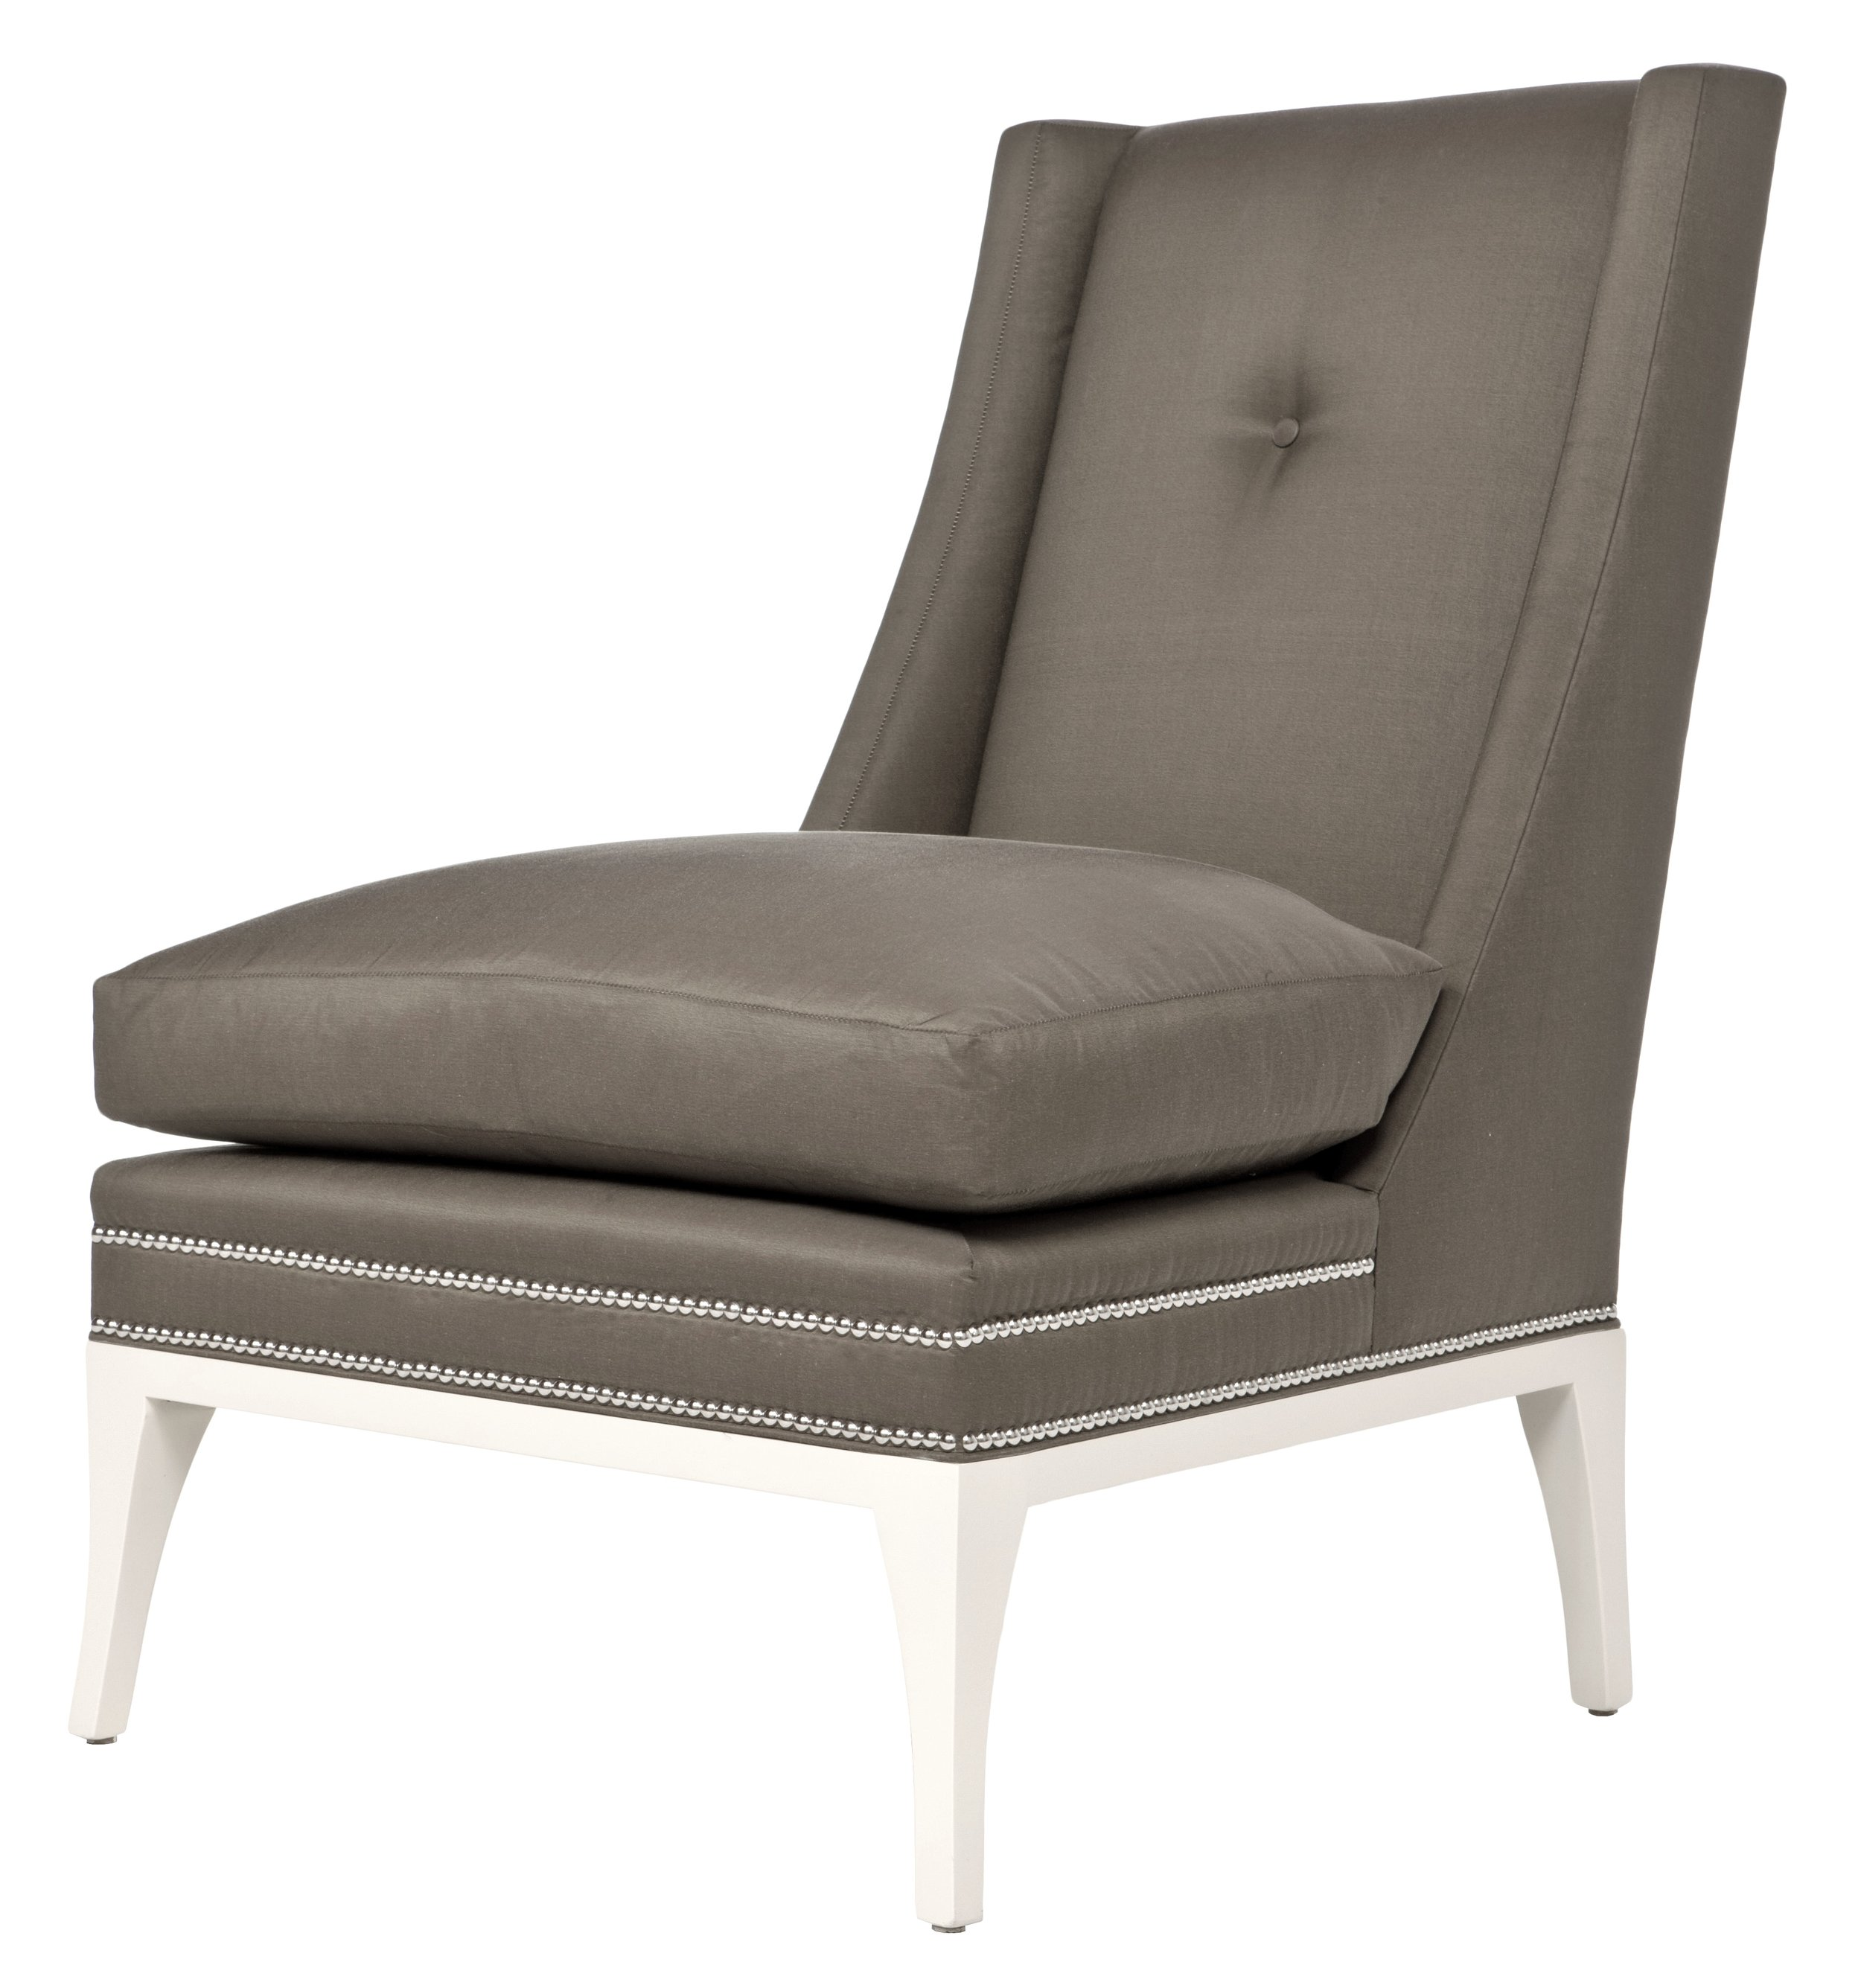 STANLY CHAIR ANGLE.jpg